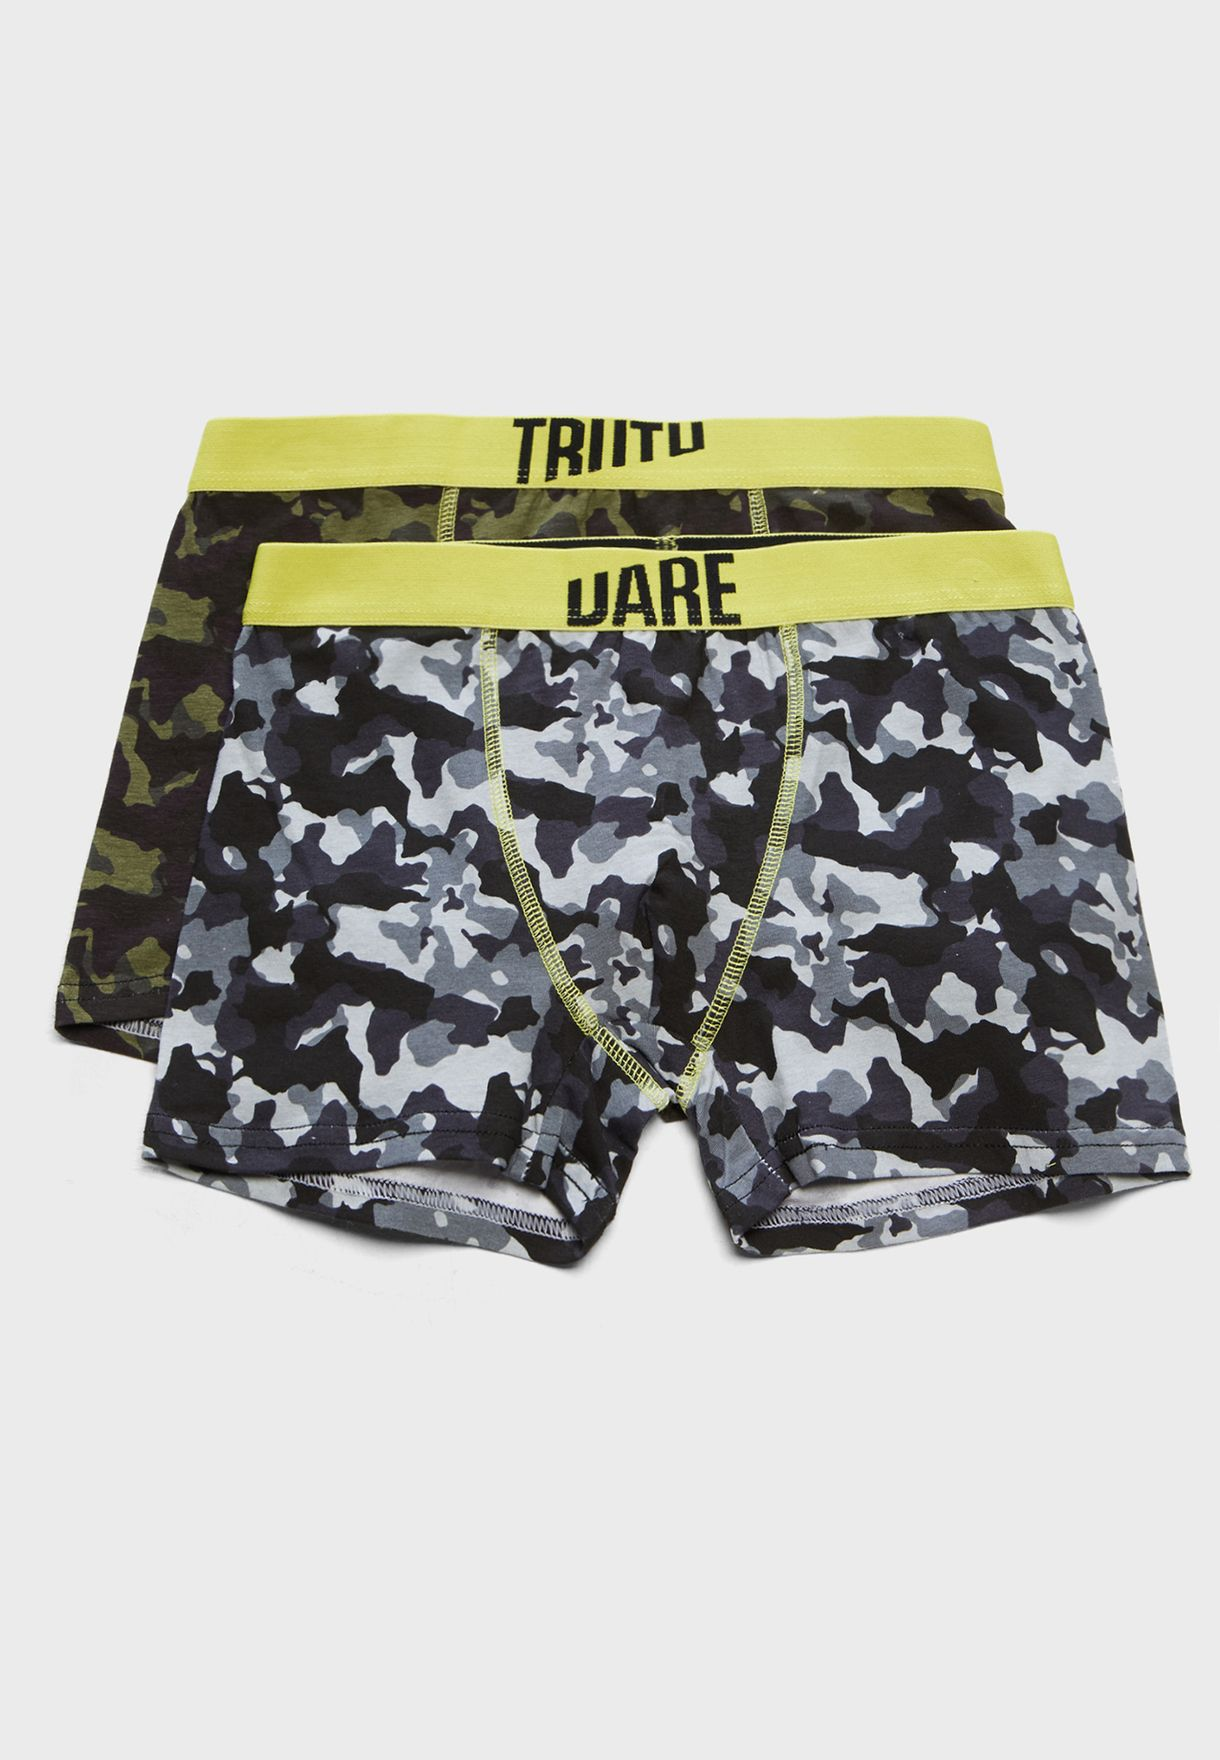 e38ae01bcd Shop Reserved prints Teen 2 Pack Camo Boxer Shorts UW748-90X for ...